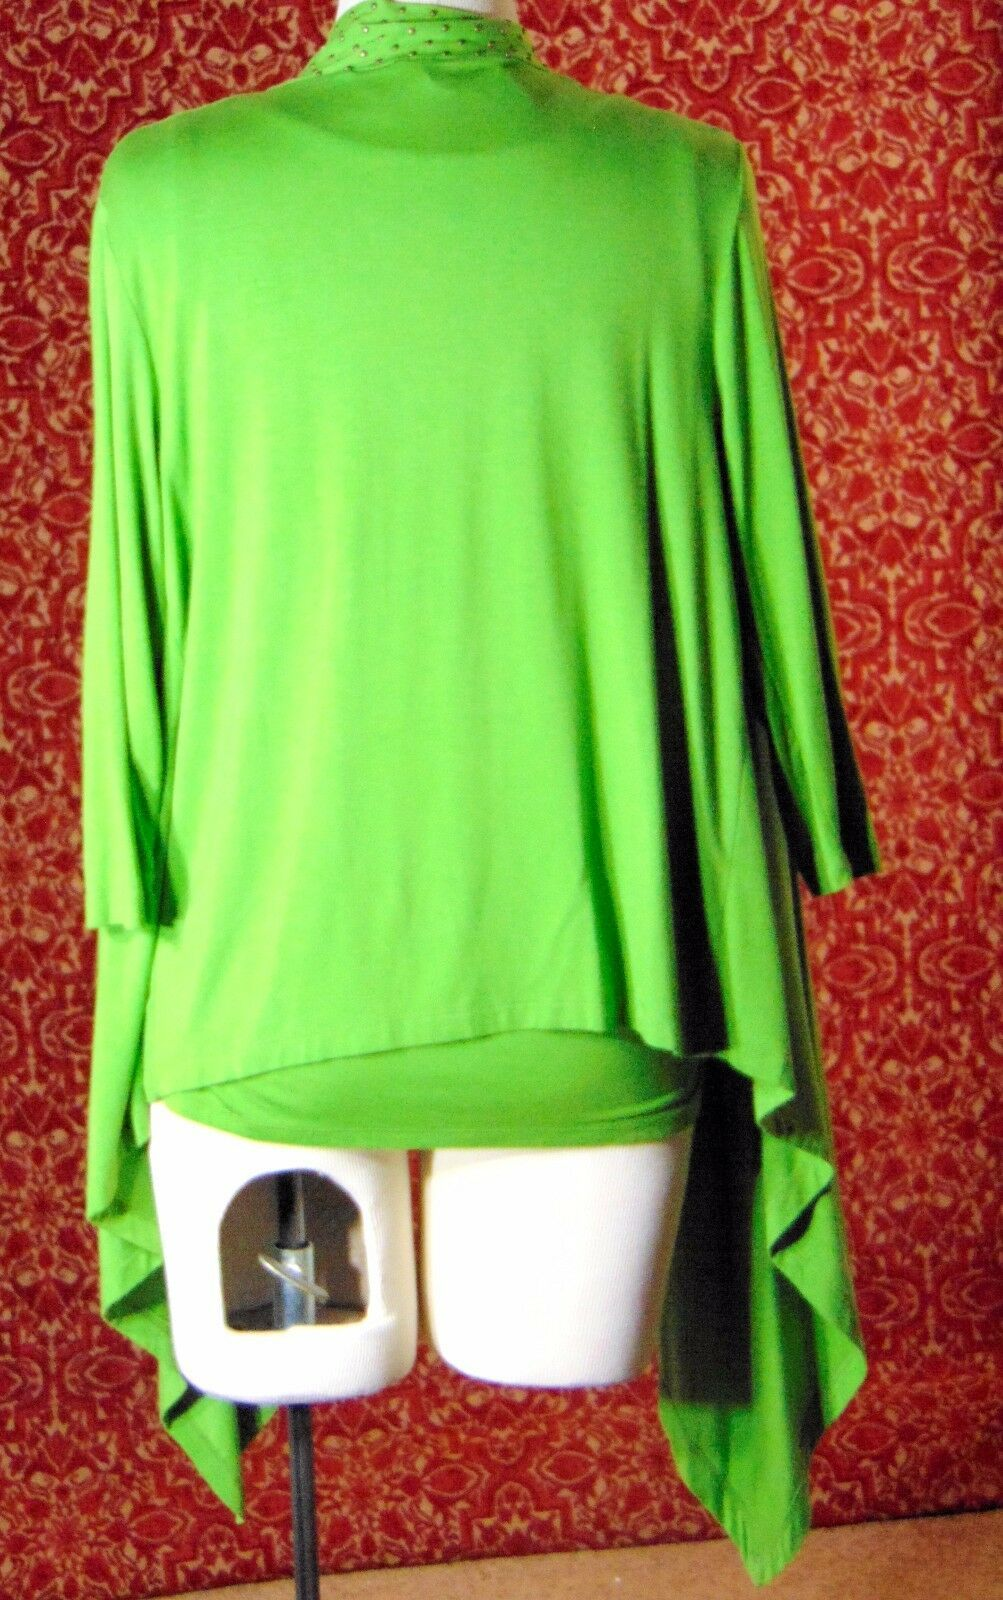 ETOILE green 2 piece stretch rayon tank blouse & sweater jacket M (T47-02I8G) image 6